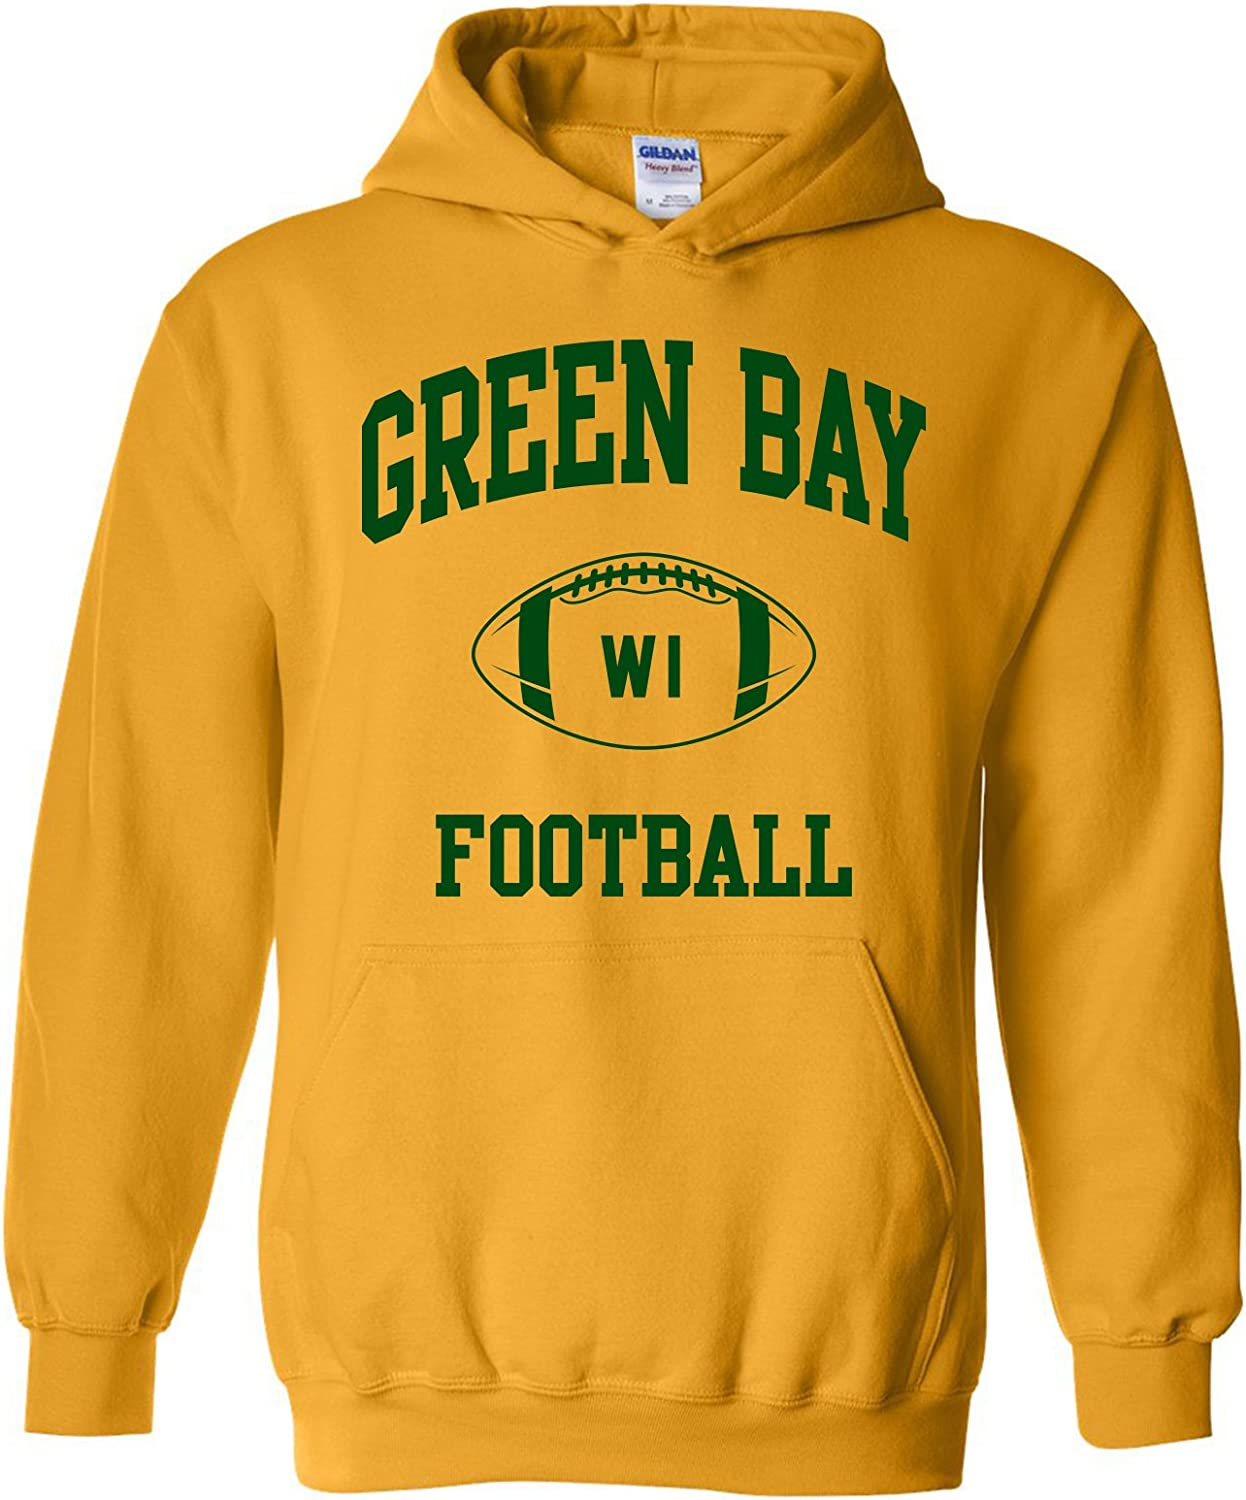 Recommendation City Classic Football Arch 35% OFF Hoodie